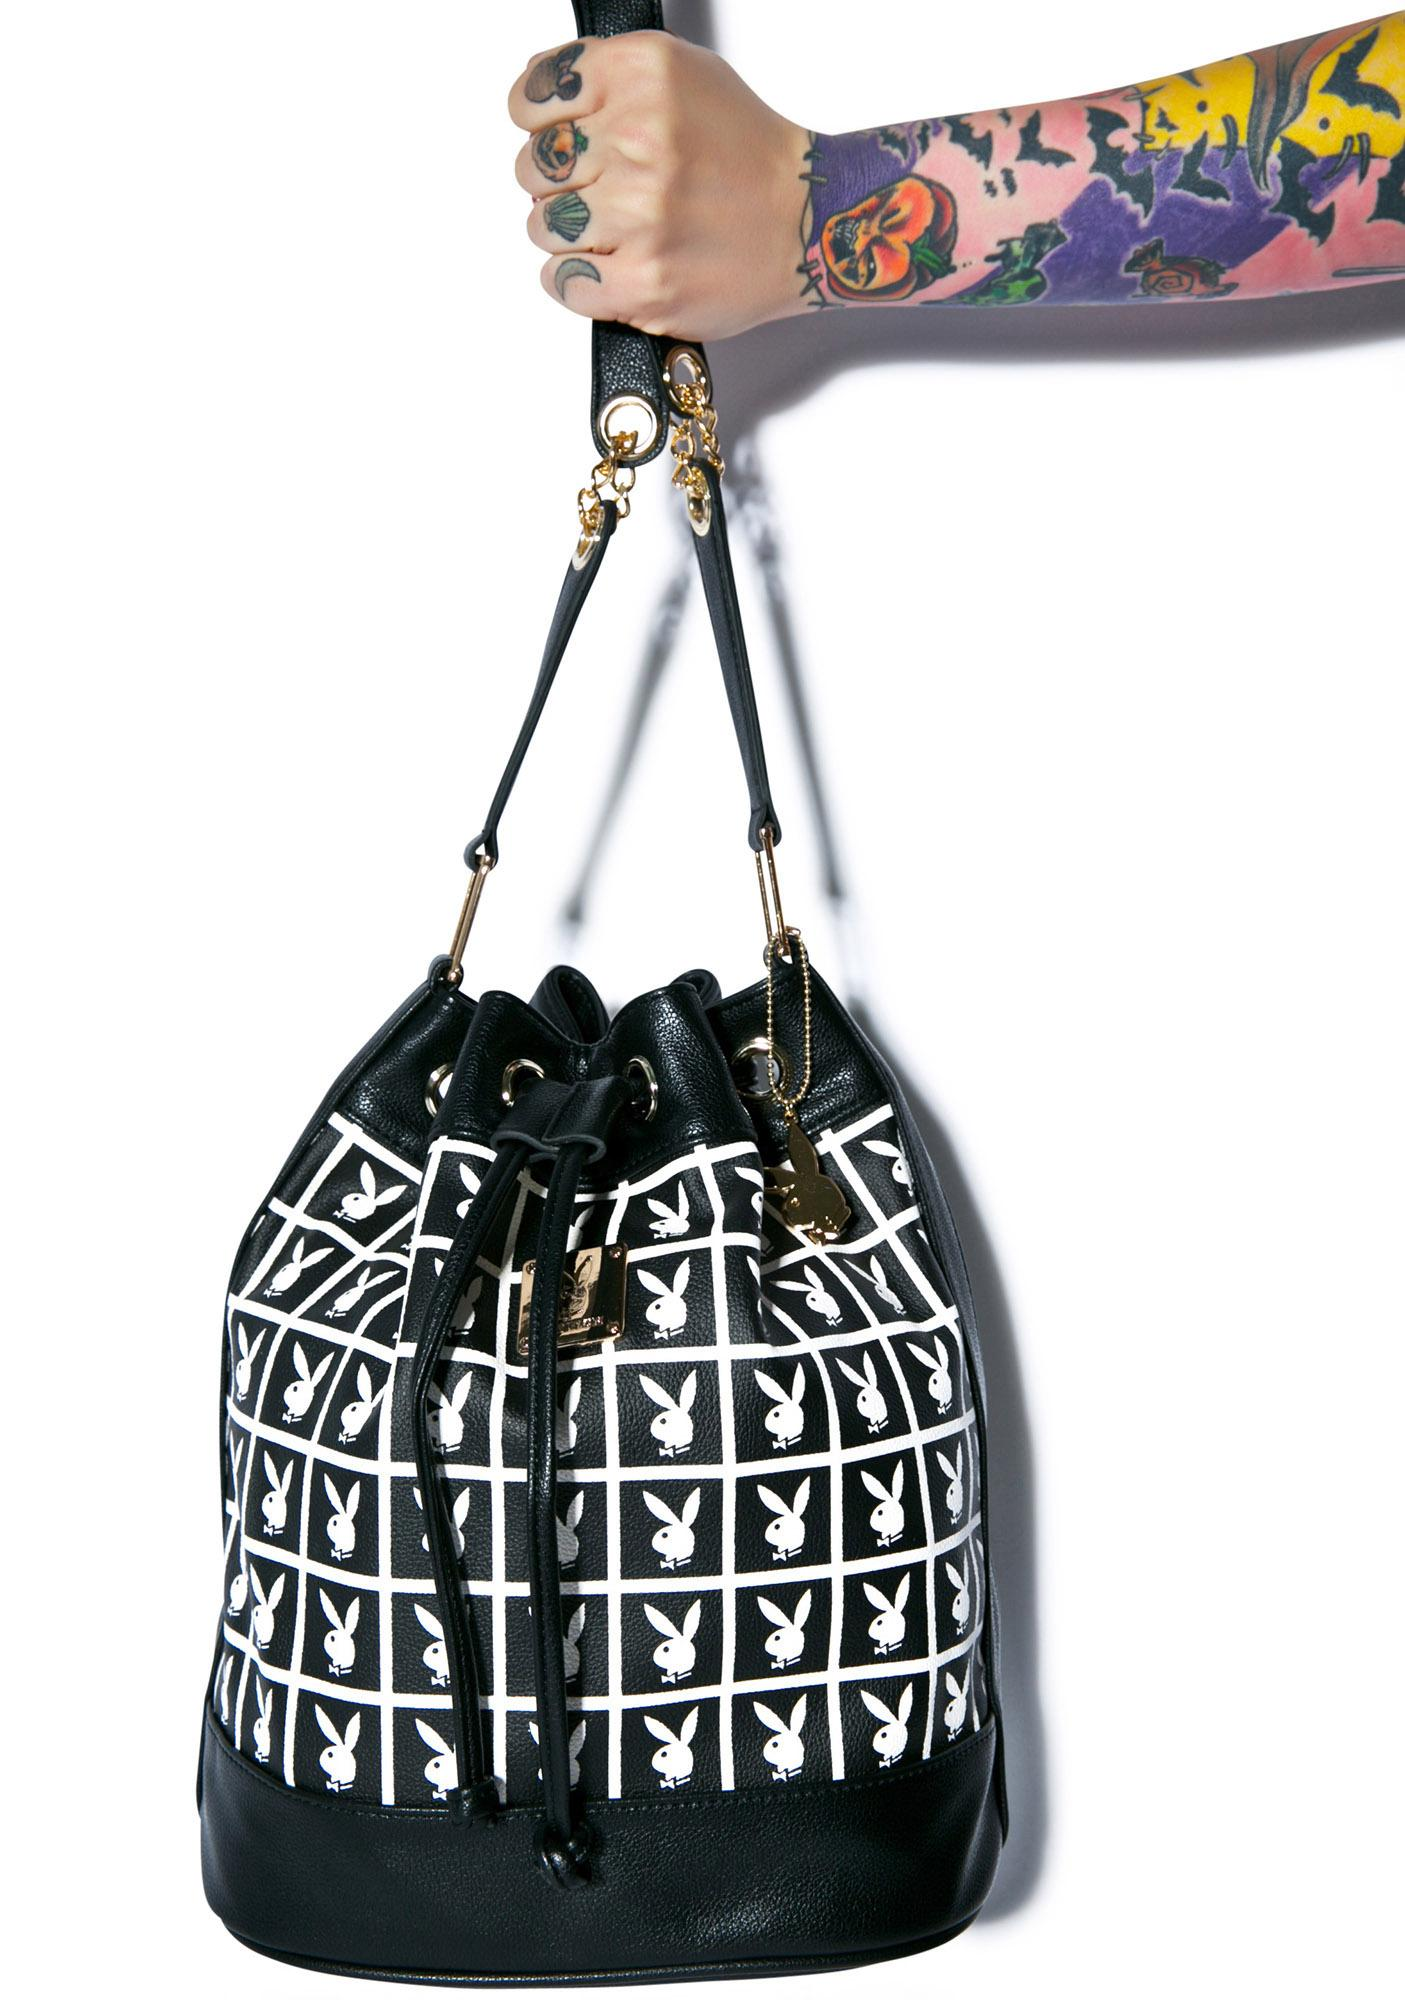 Joyrich X Playboy Panel Bucket Bag